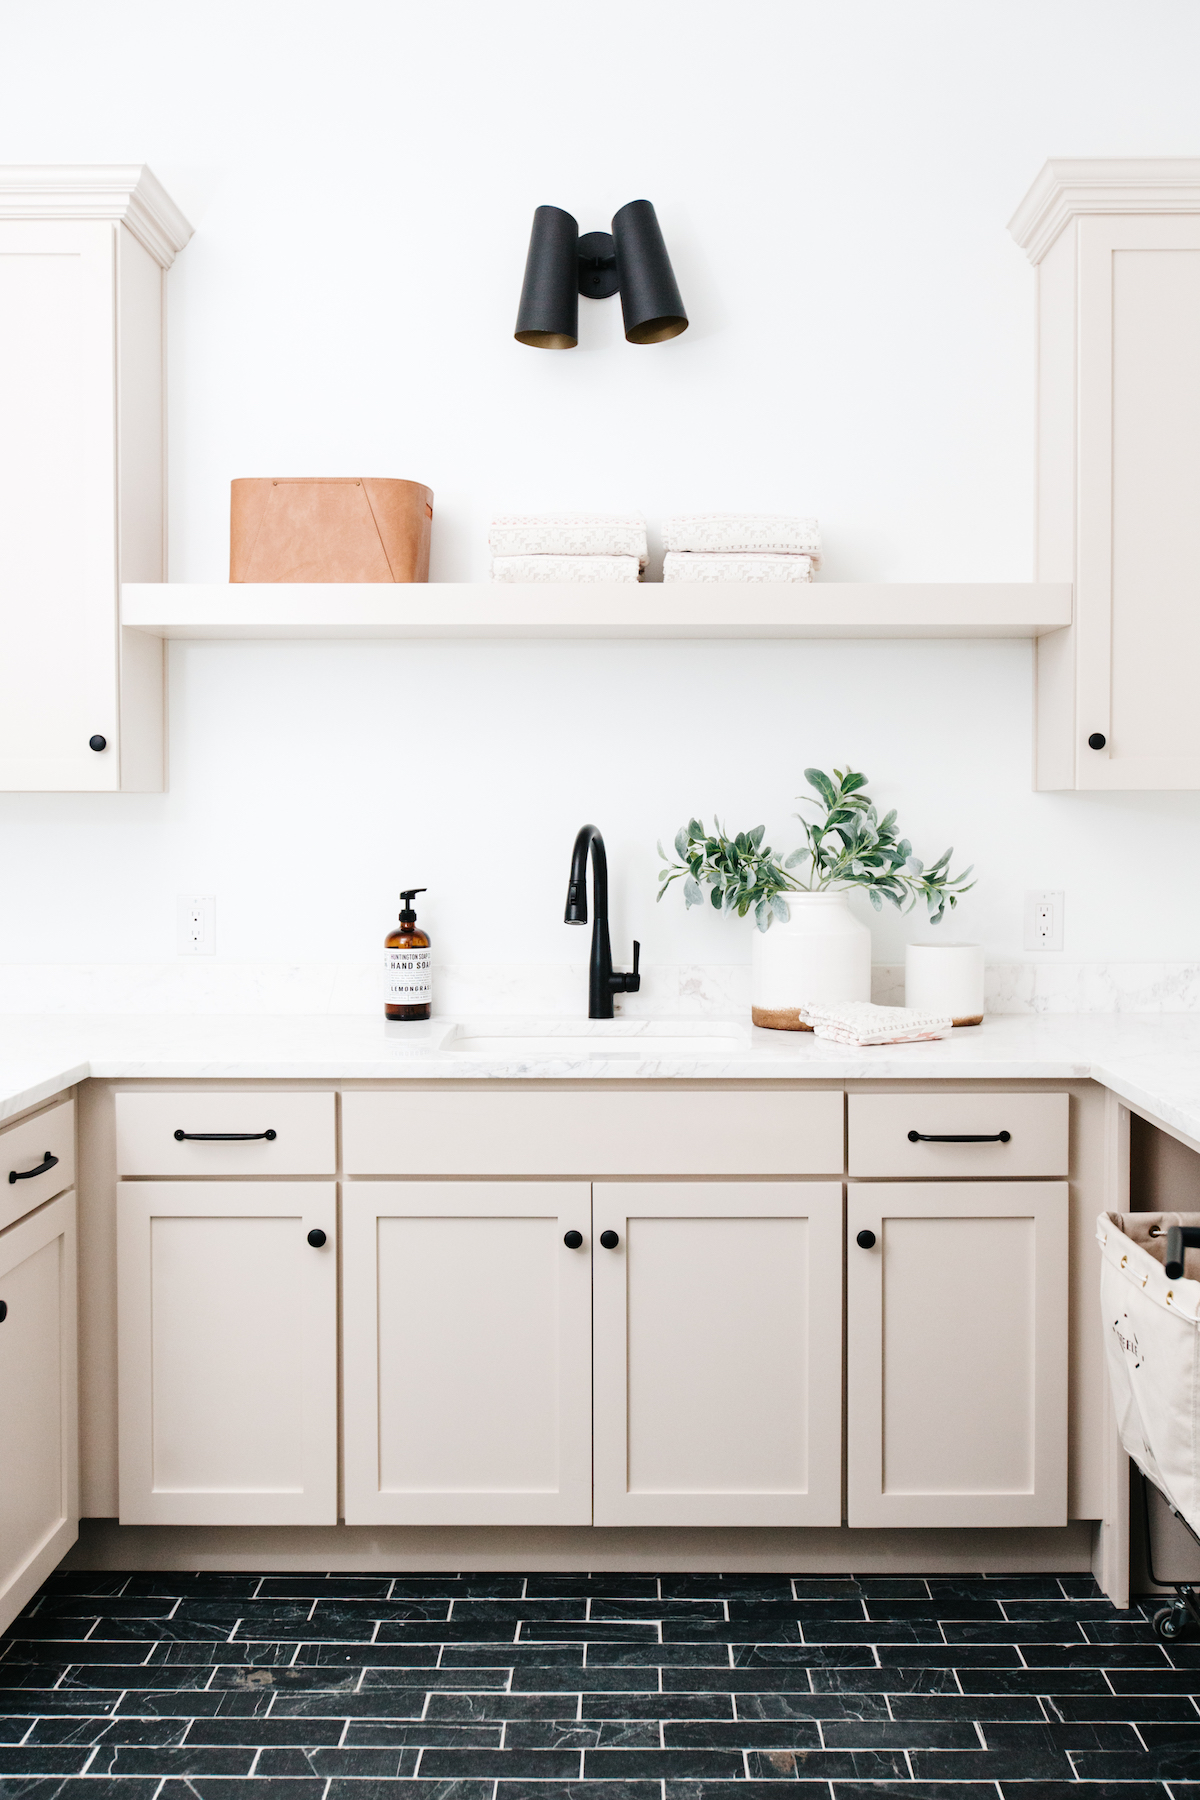 Cabinets in 'Edgecomb Gray' from Benjamin Moore, IMAGE CREDIT: Photo by Rennai Hoefer via The Haven List, Designer: Gather Projects , Staging: Lexi Grace Design